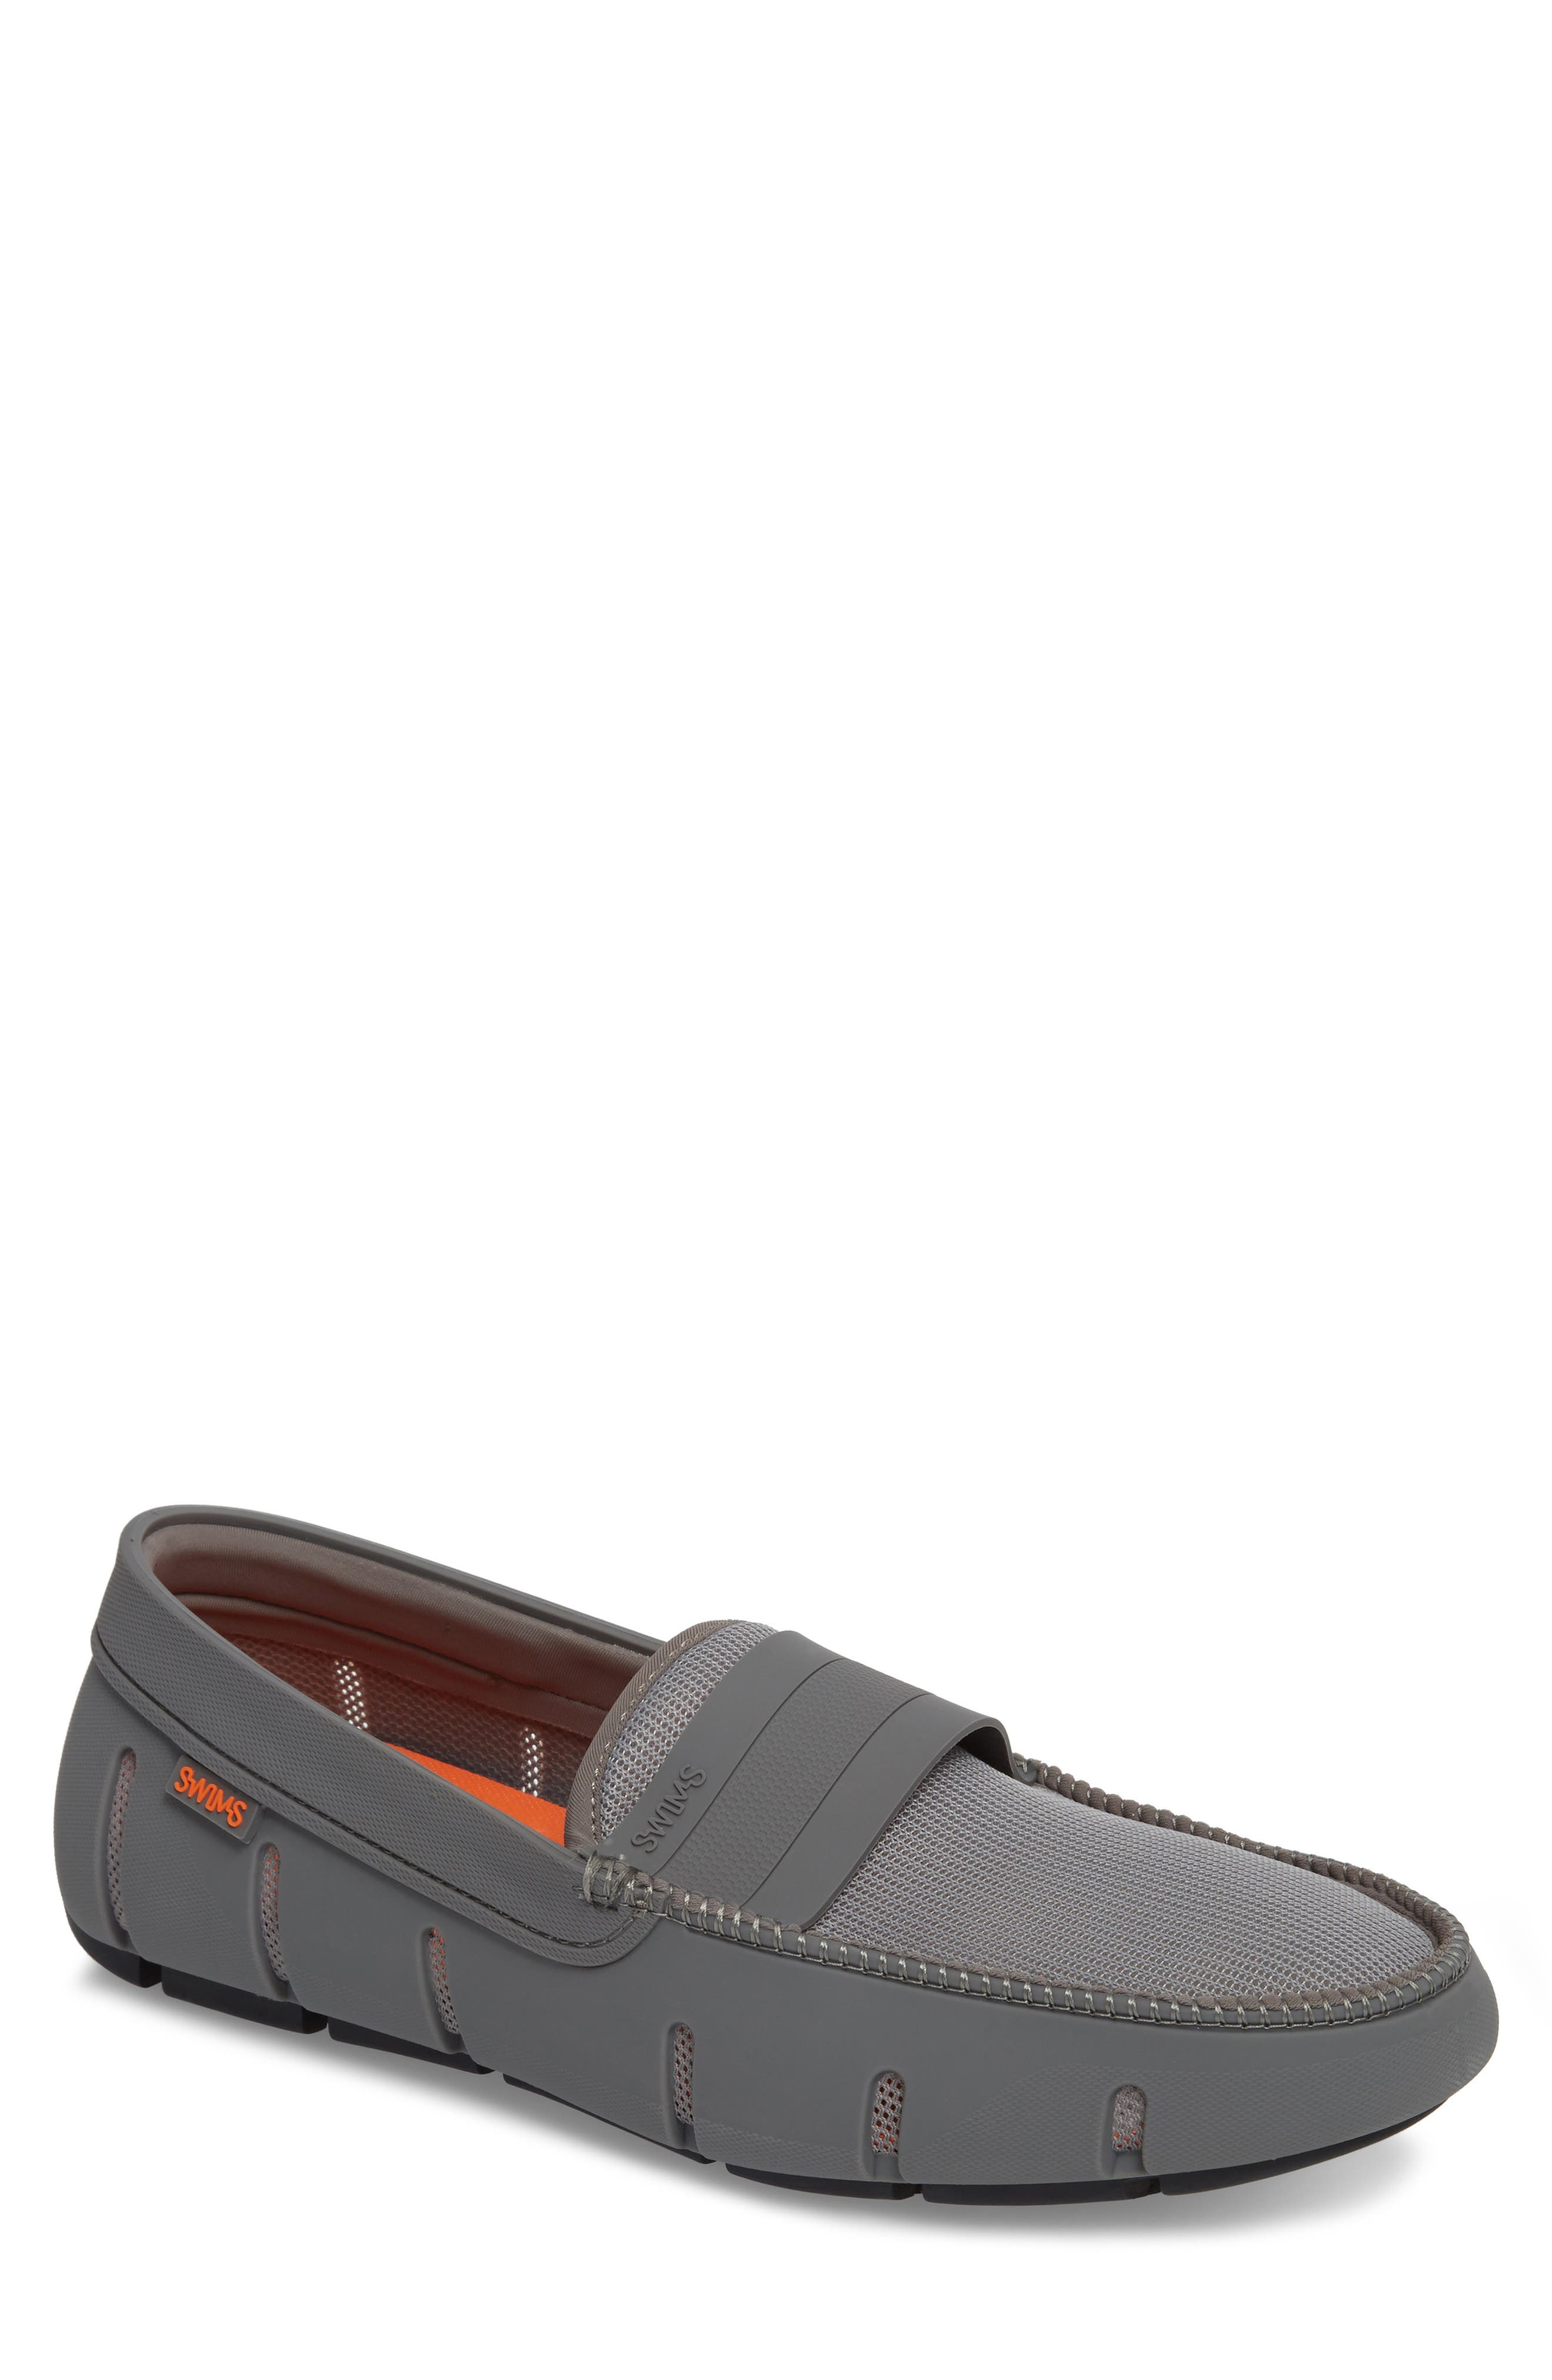 Stride Banded Loafer,                             Main thumbnail 1, color,                             020